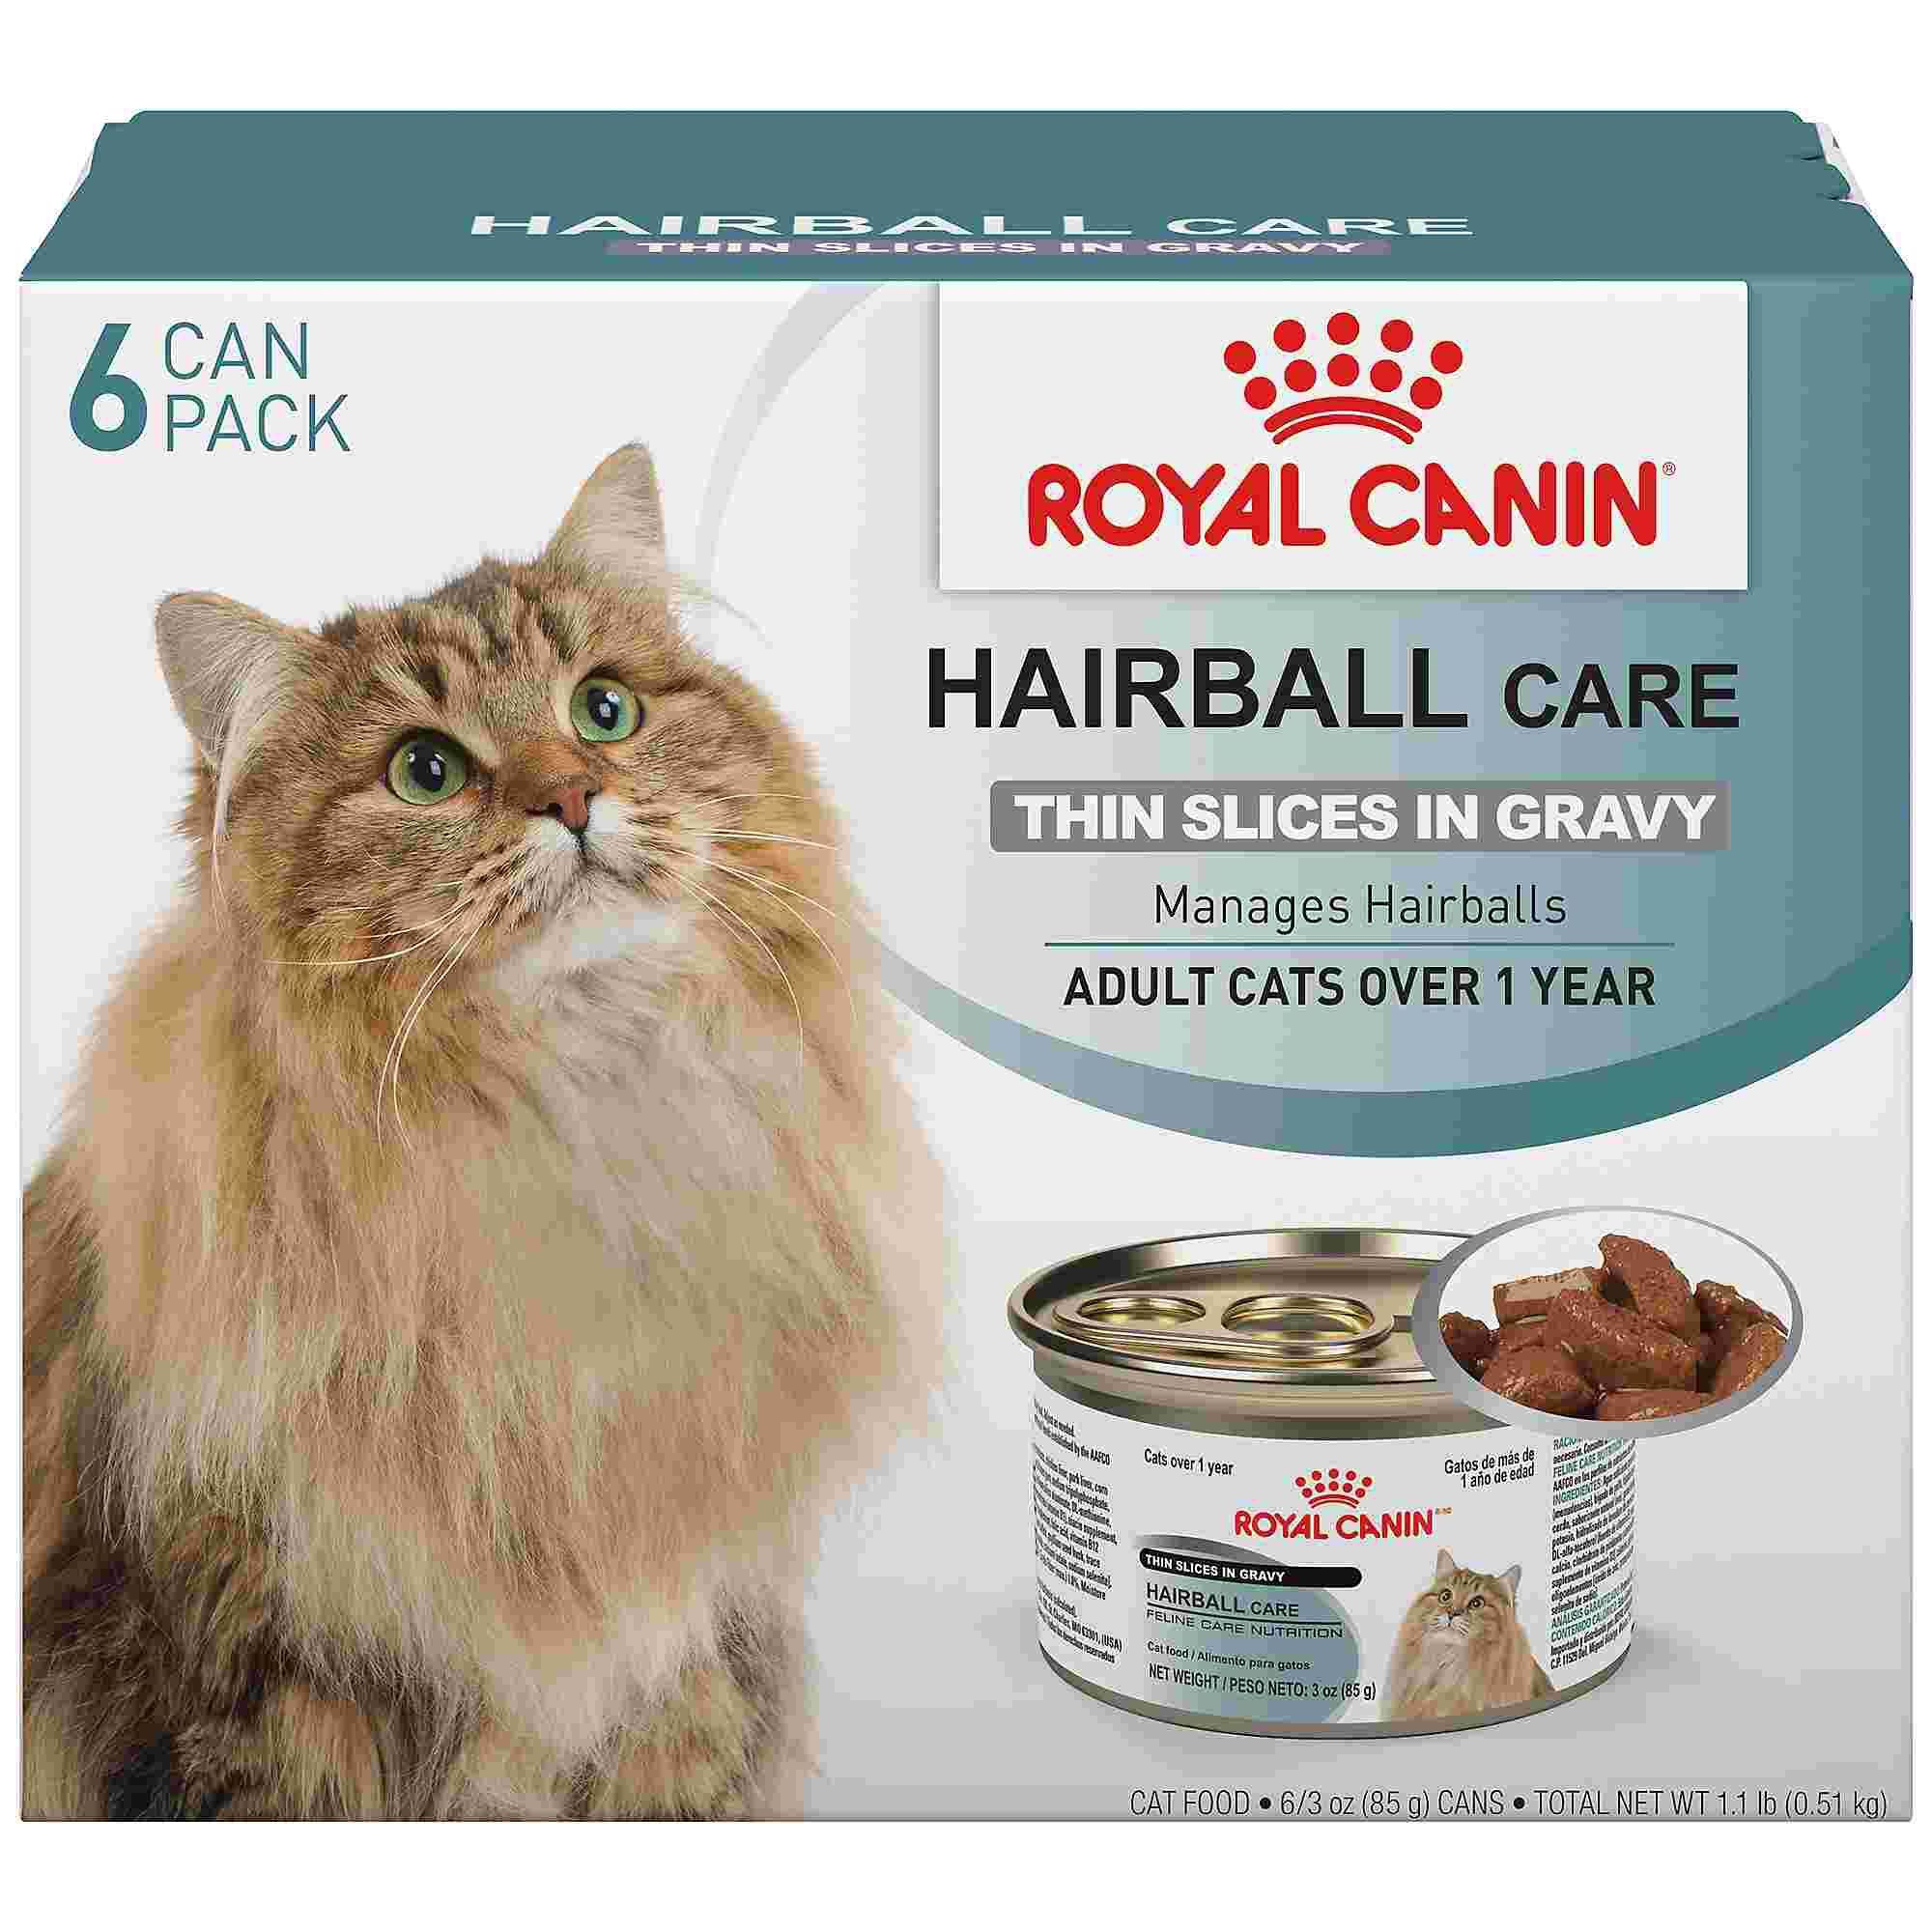 Royal Canin Hairball Care Thin Slices In Gravy Wet Cat Food Multipack 3 Oz Count Of 6 Petco In 2020 Cat Food Wet Cat Food Canned Cat Food